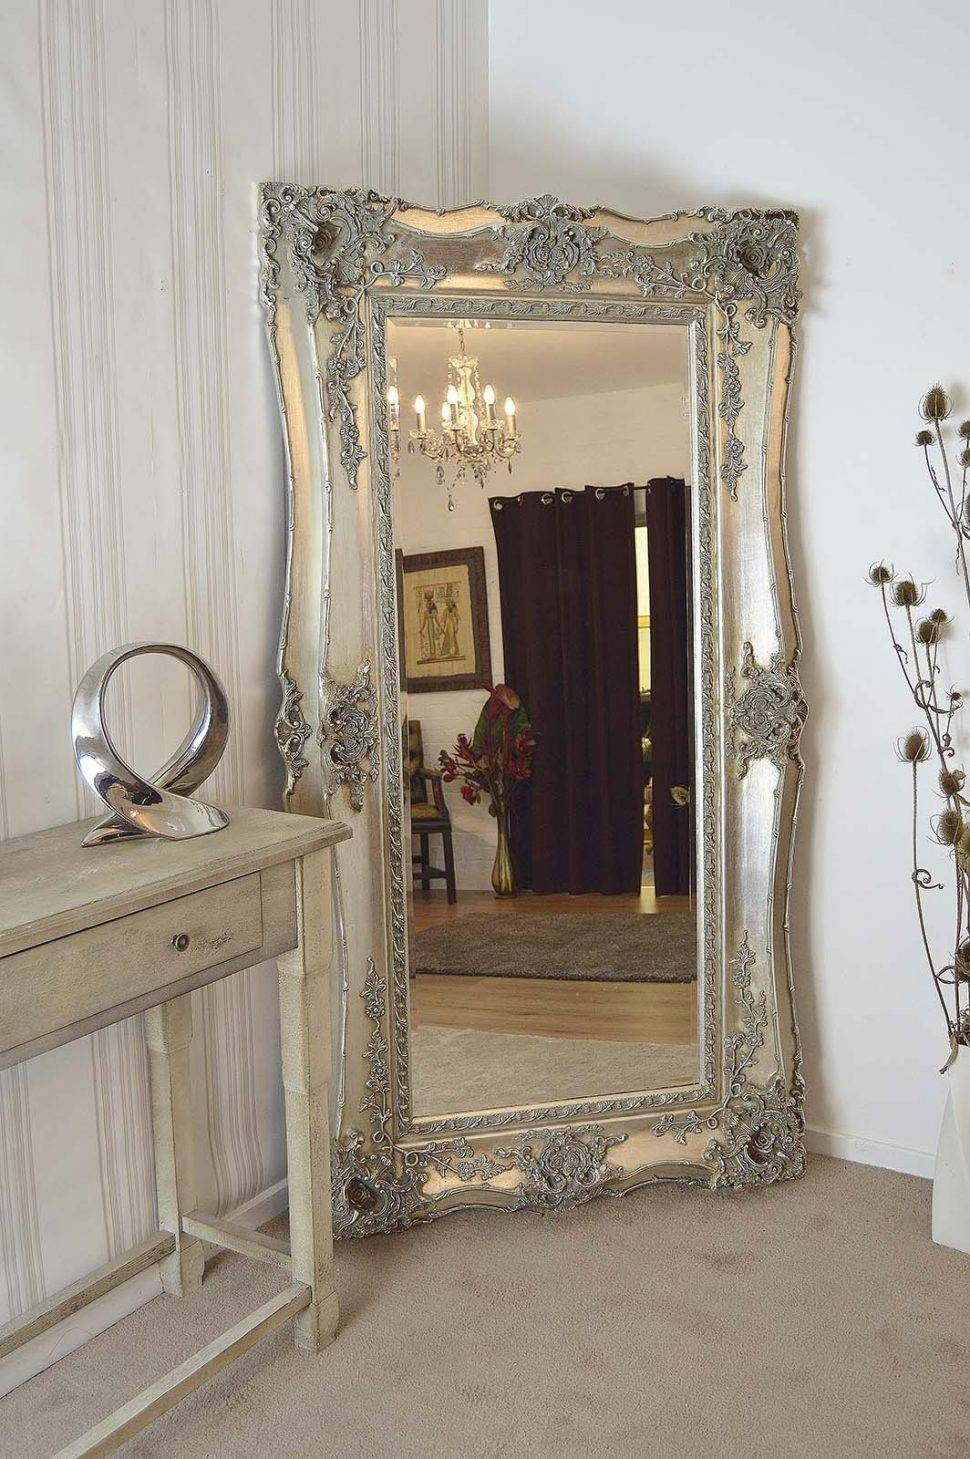 Bedroom Furniture : Large Gold Mirror Free Standing Mirror Wooden throughout Long Free Standing Mirrors (Image 3 of 25)